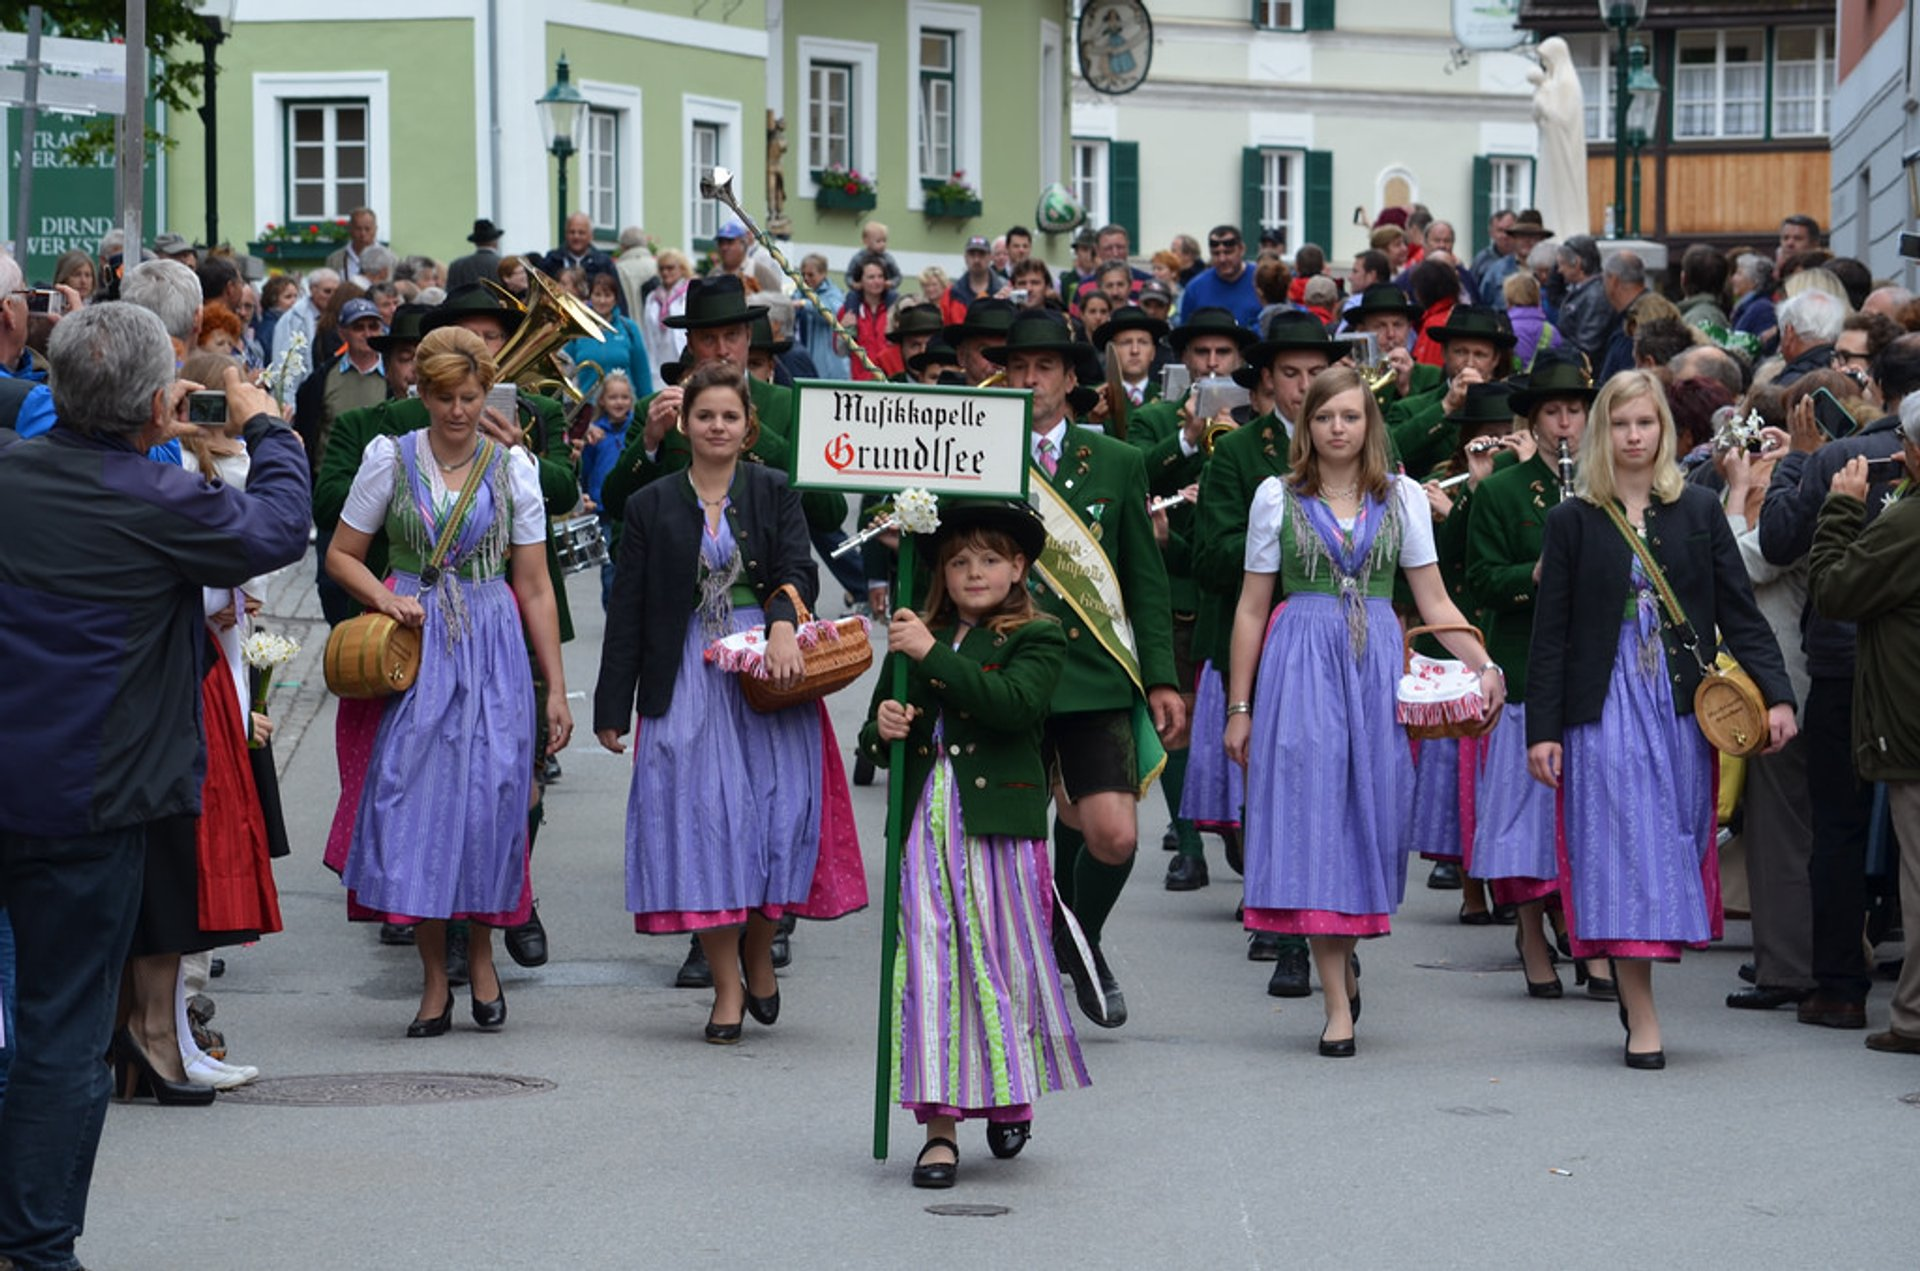 Best time to see The Narzissenfest in Austria 2019